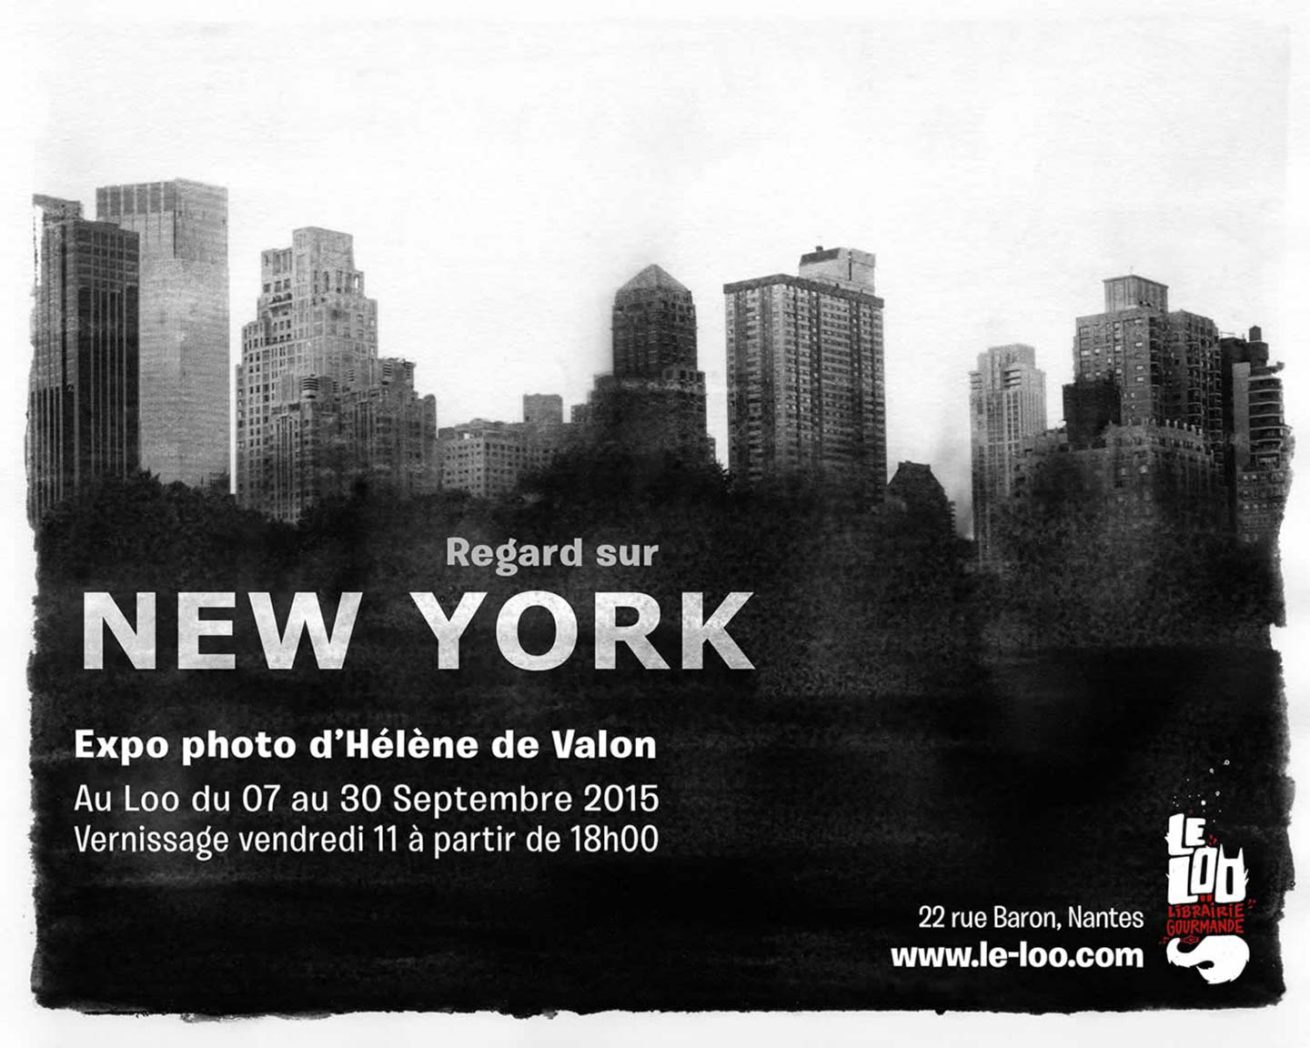 Helene de Valon exhibition, Regard sur New York